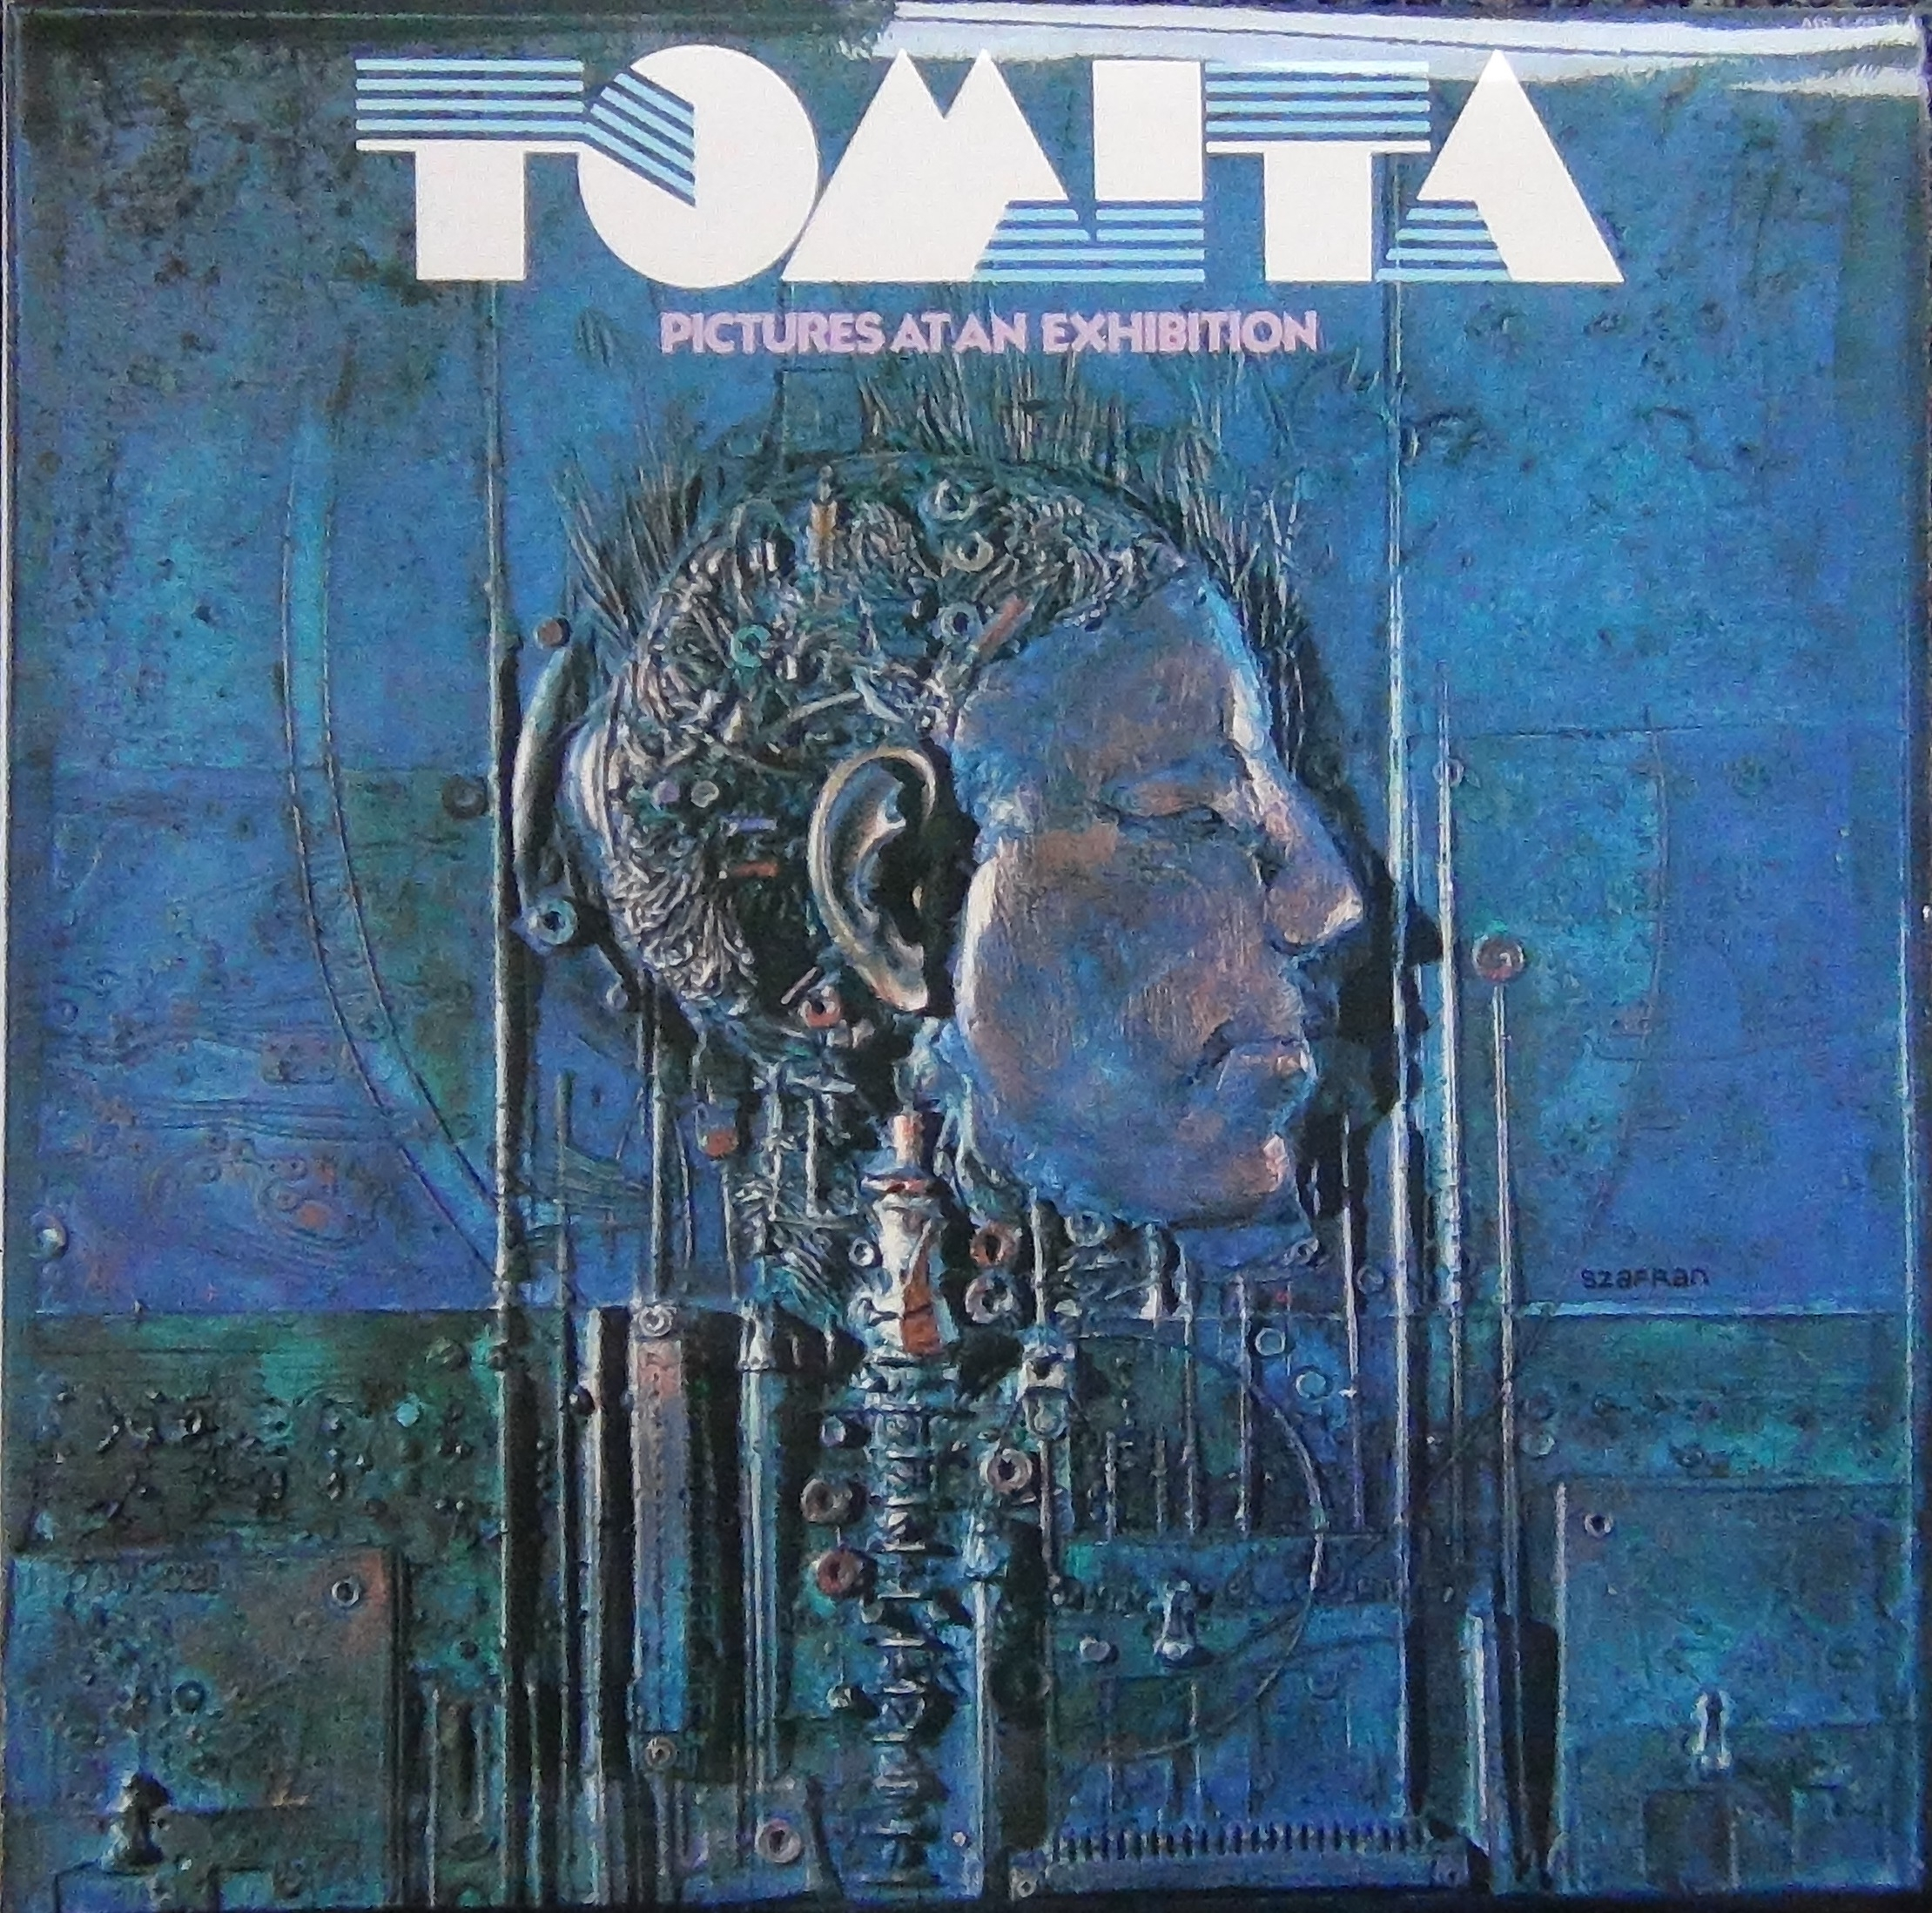 Tomita Pictures At An Exhibition Vinyl